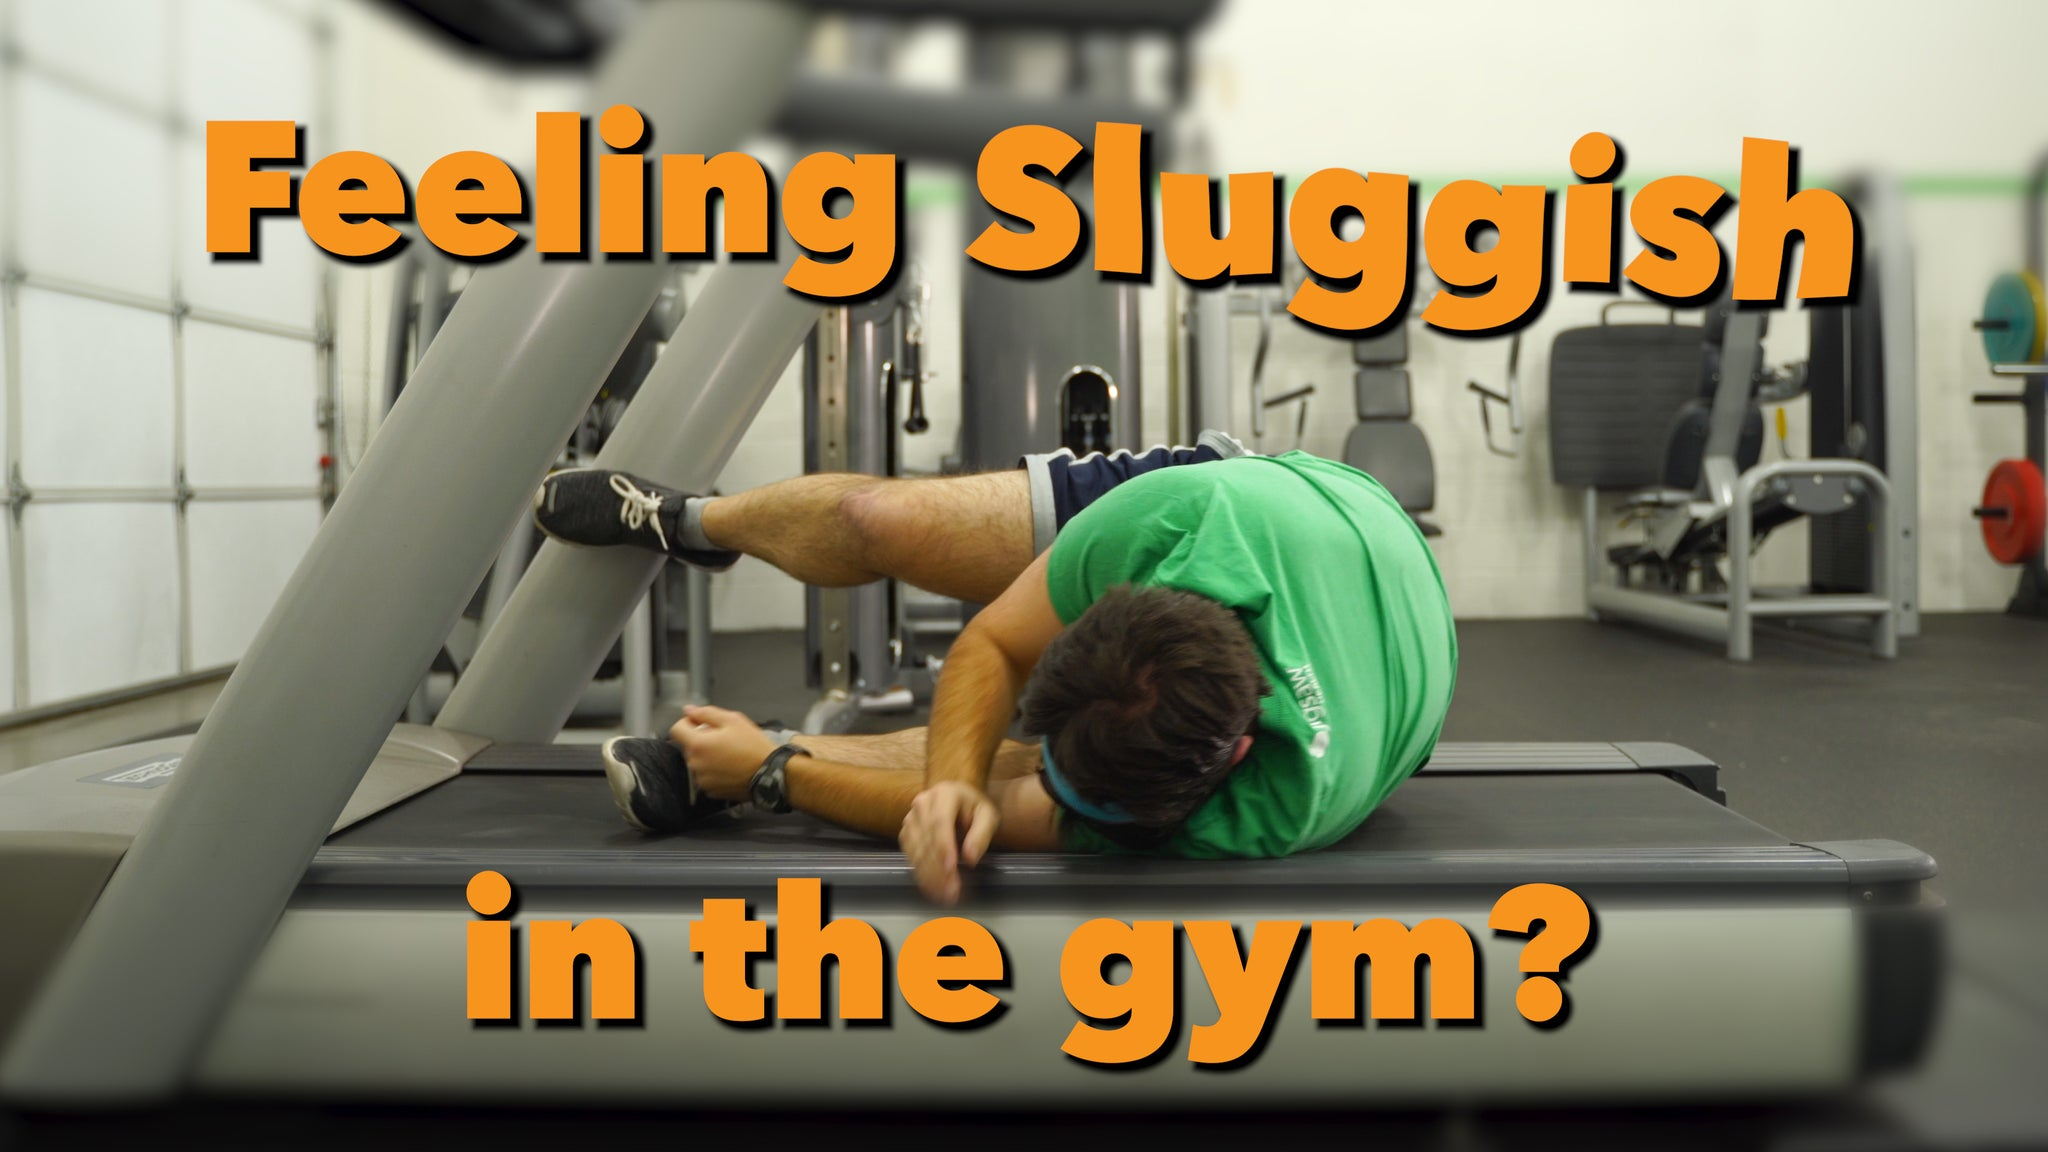 Feeling Sluggish in the Gym? | #FunnyFriday